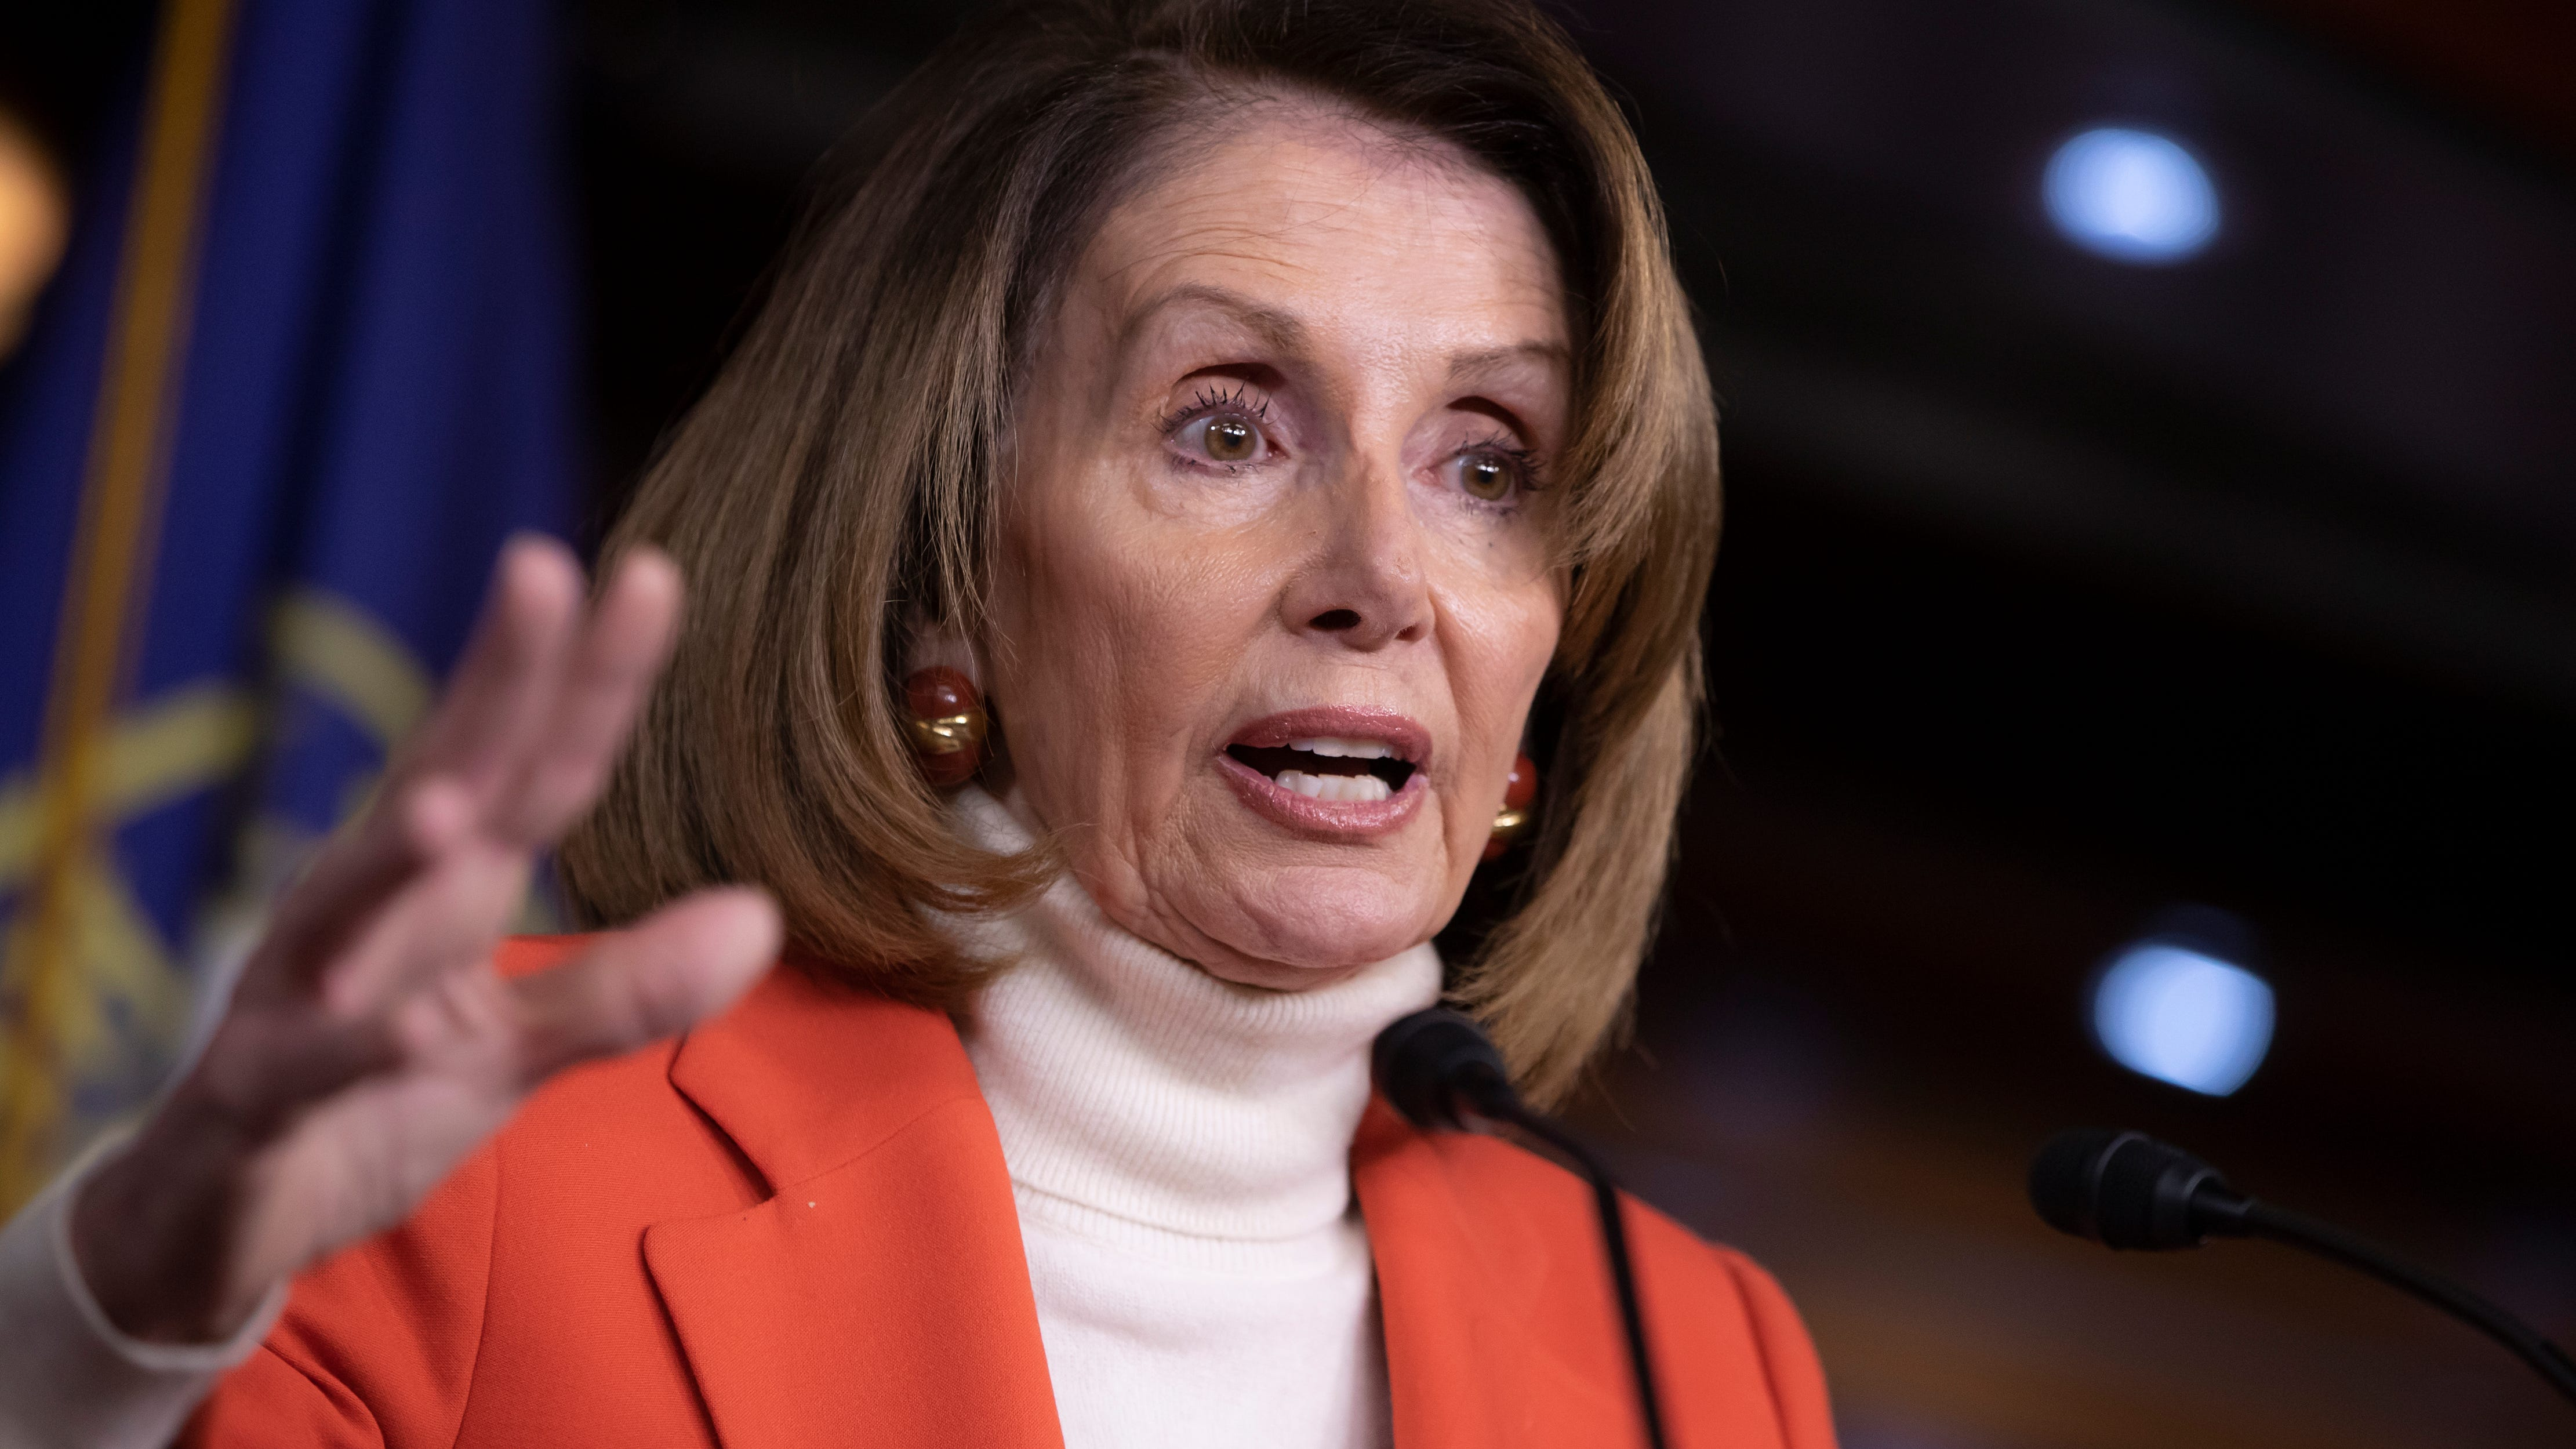 House Minority Leader Nancy Pelosi, D-Calif., faces reporters during a news conference at the Capitol in Washington, Nov. 15, 2018.